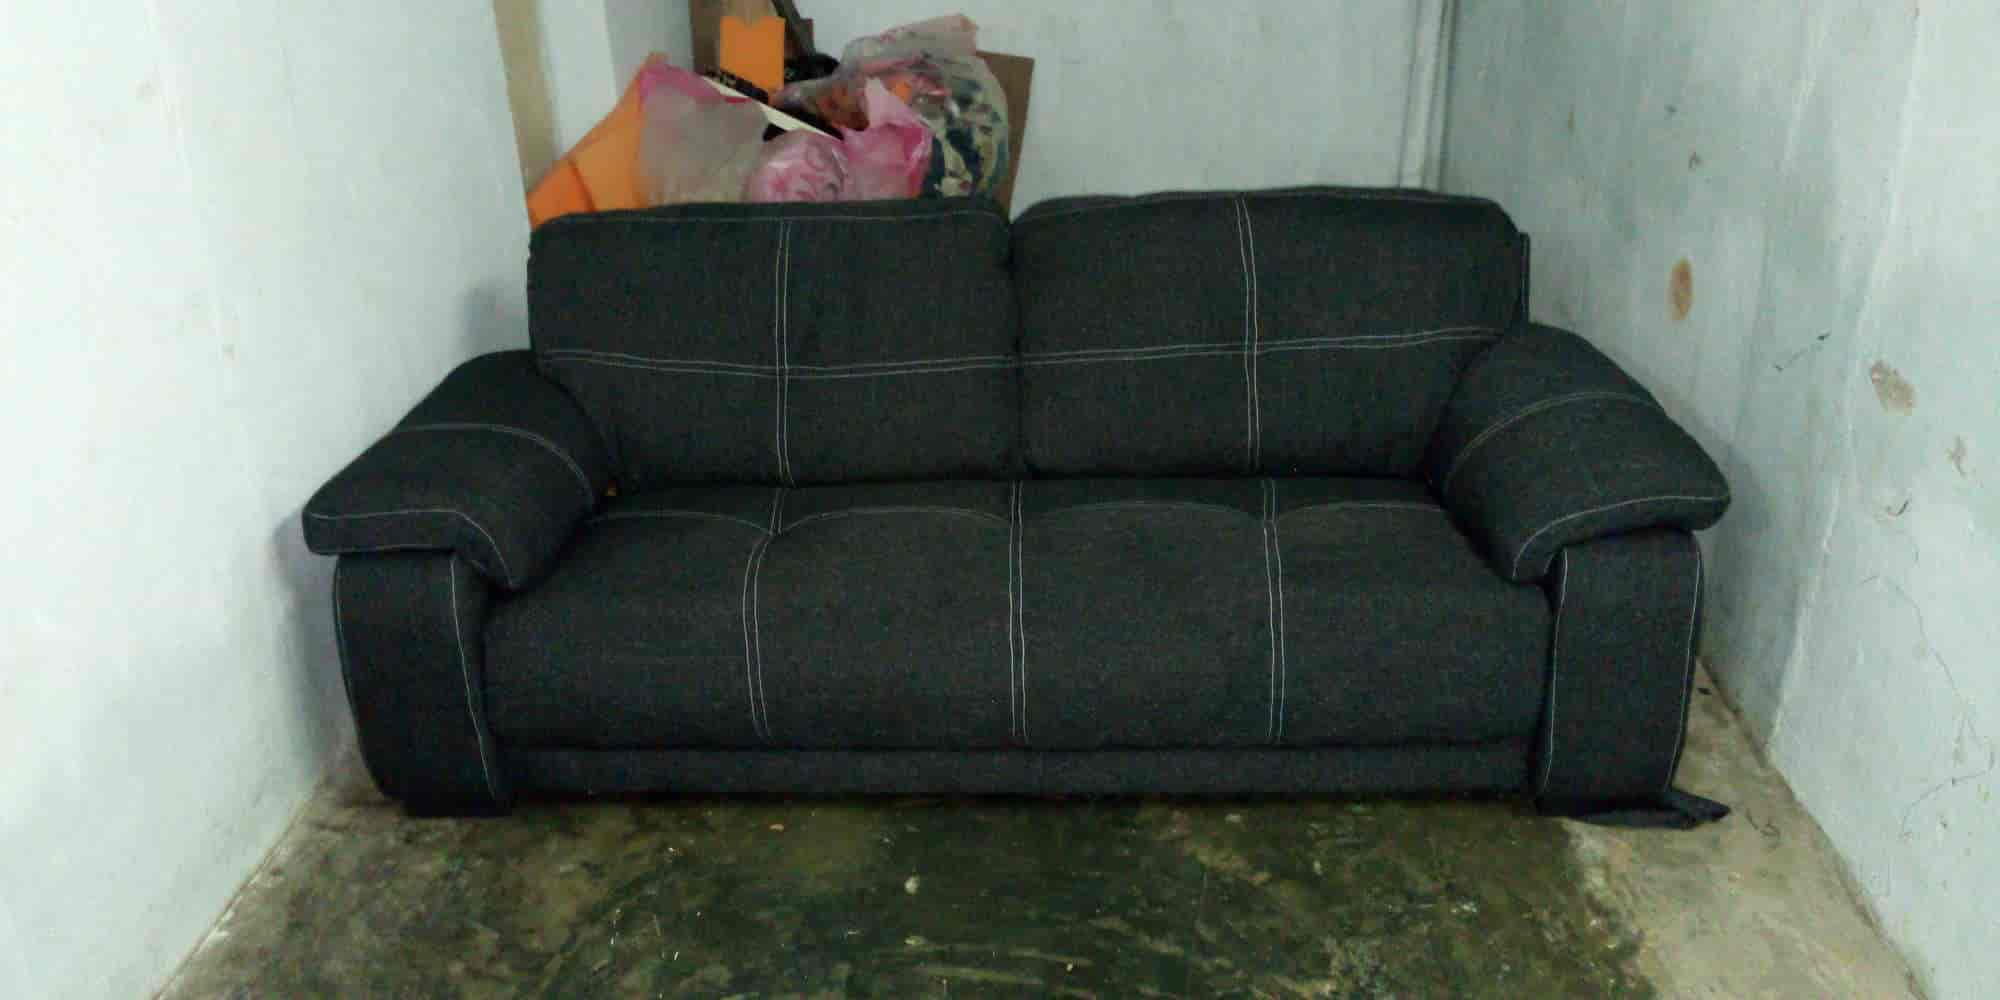 Sofa Repair Visakhapatnam Teja Sofa Repairing Work Gajuwaka Sofa Set Repair Services In